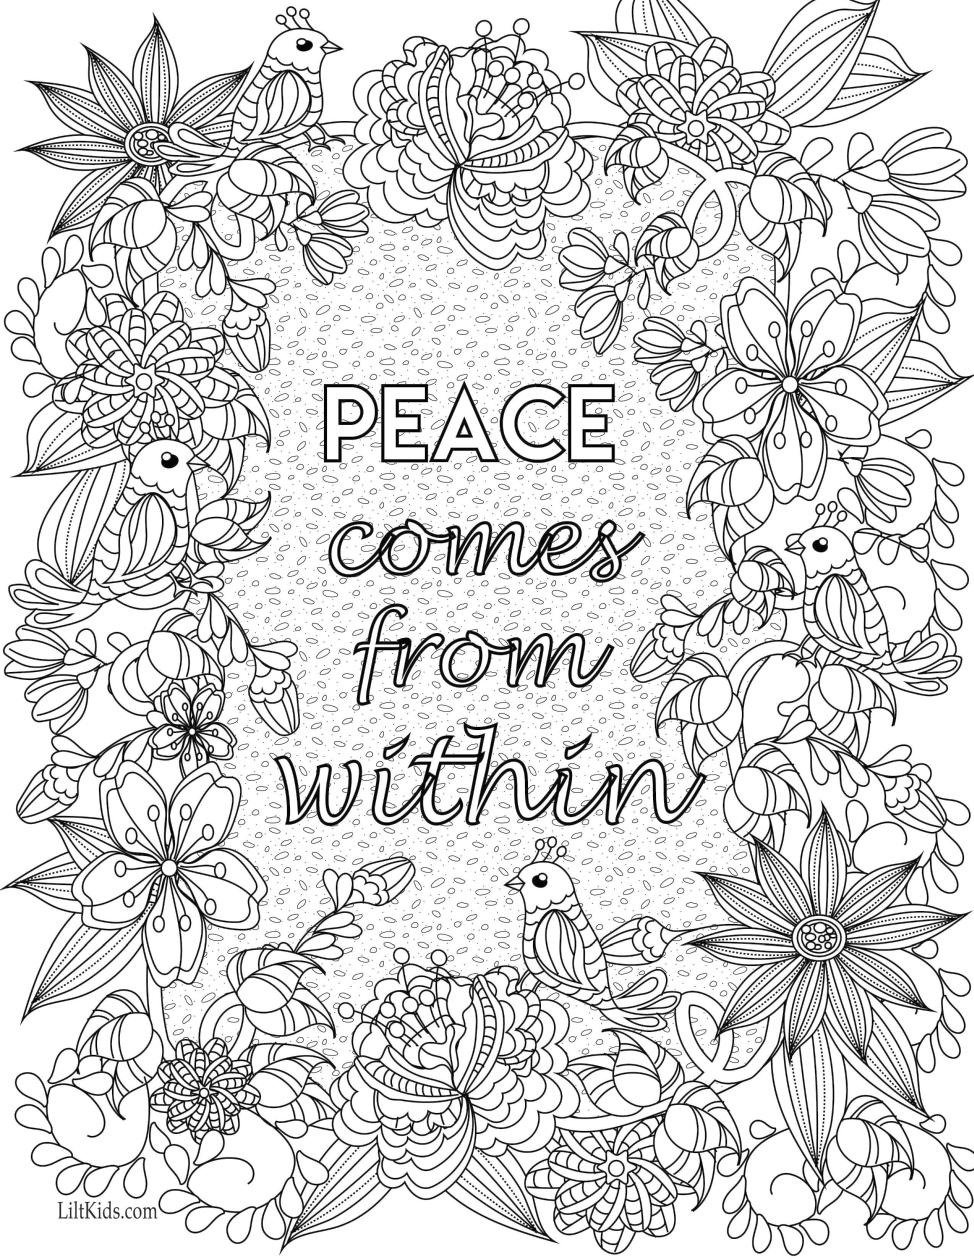 Inspirational Coloring Pages Peace Comes from Within